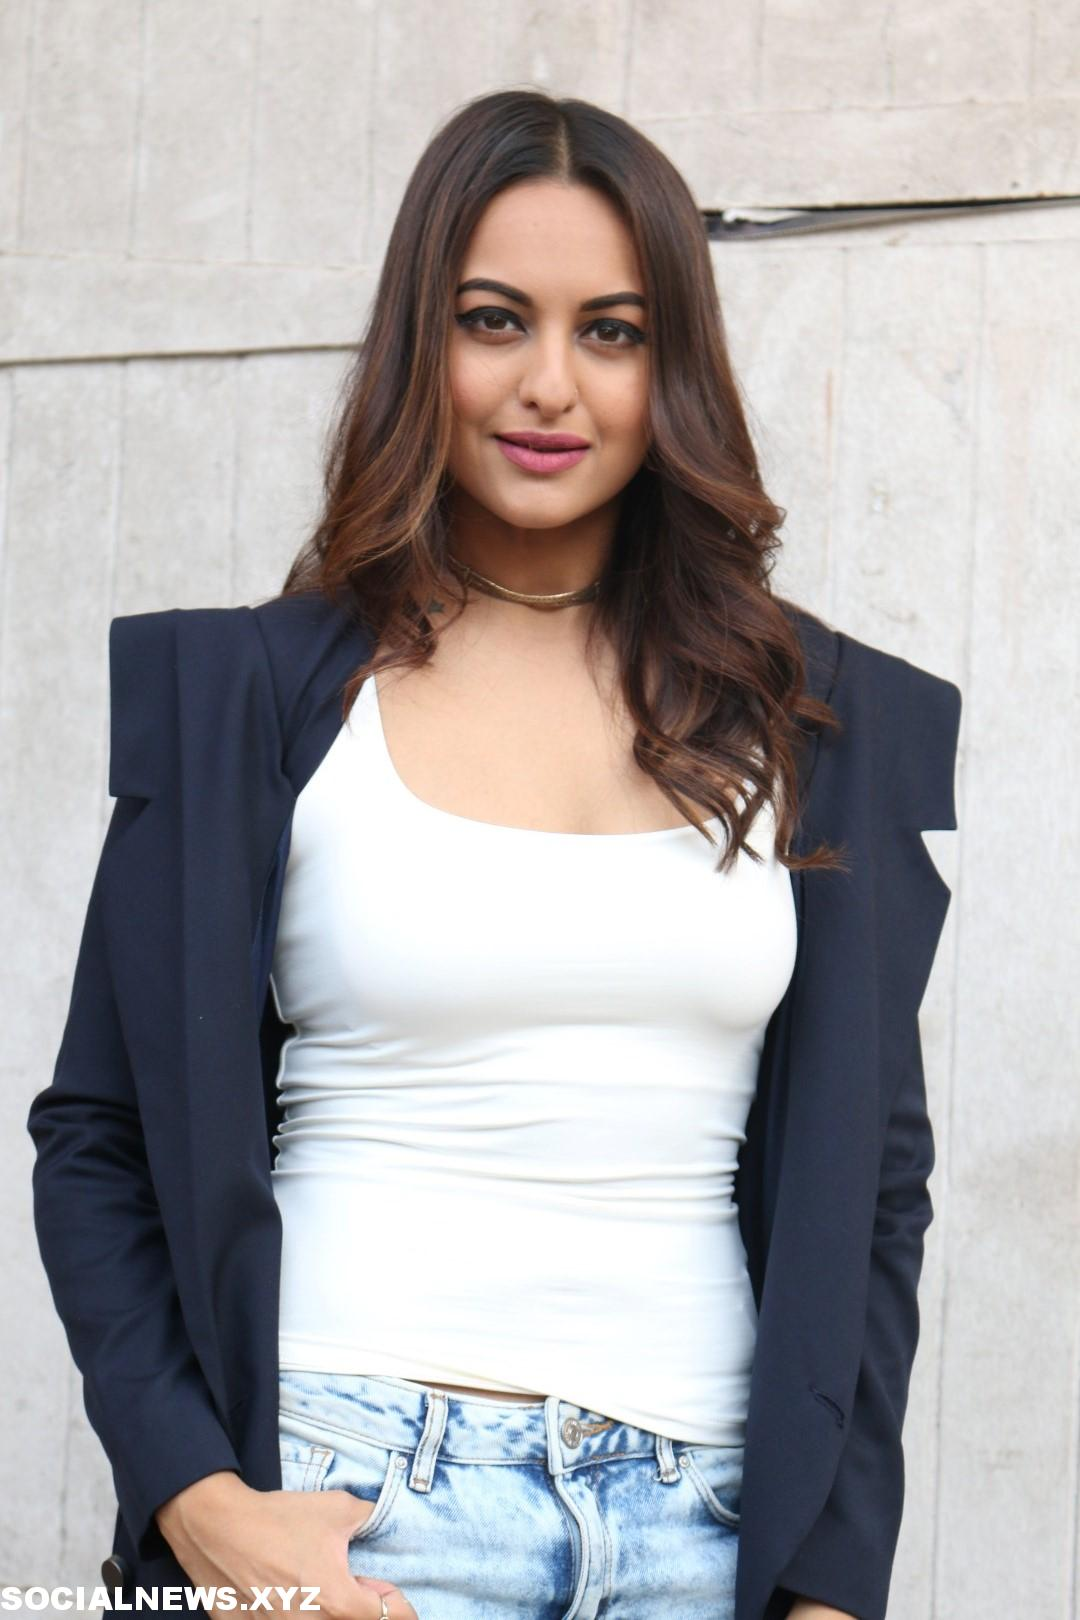 actress sonakshi sinha new stills social news xyz